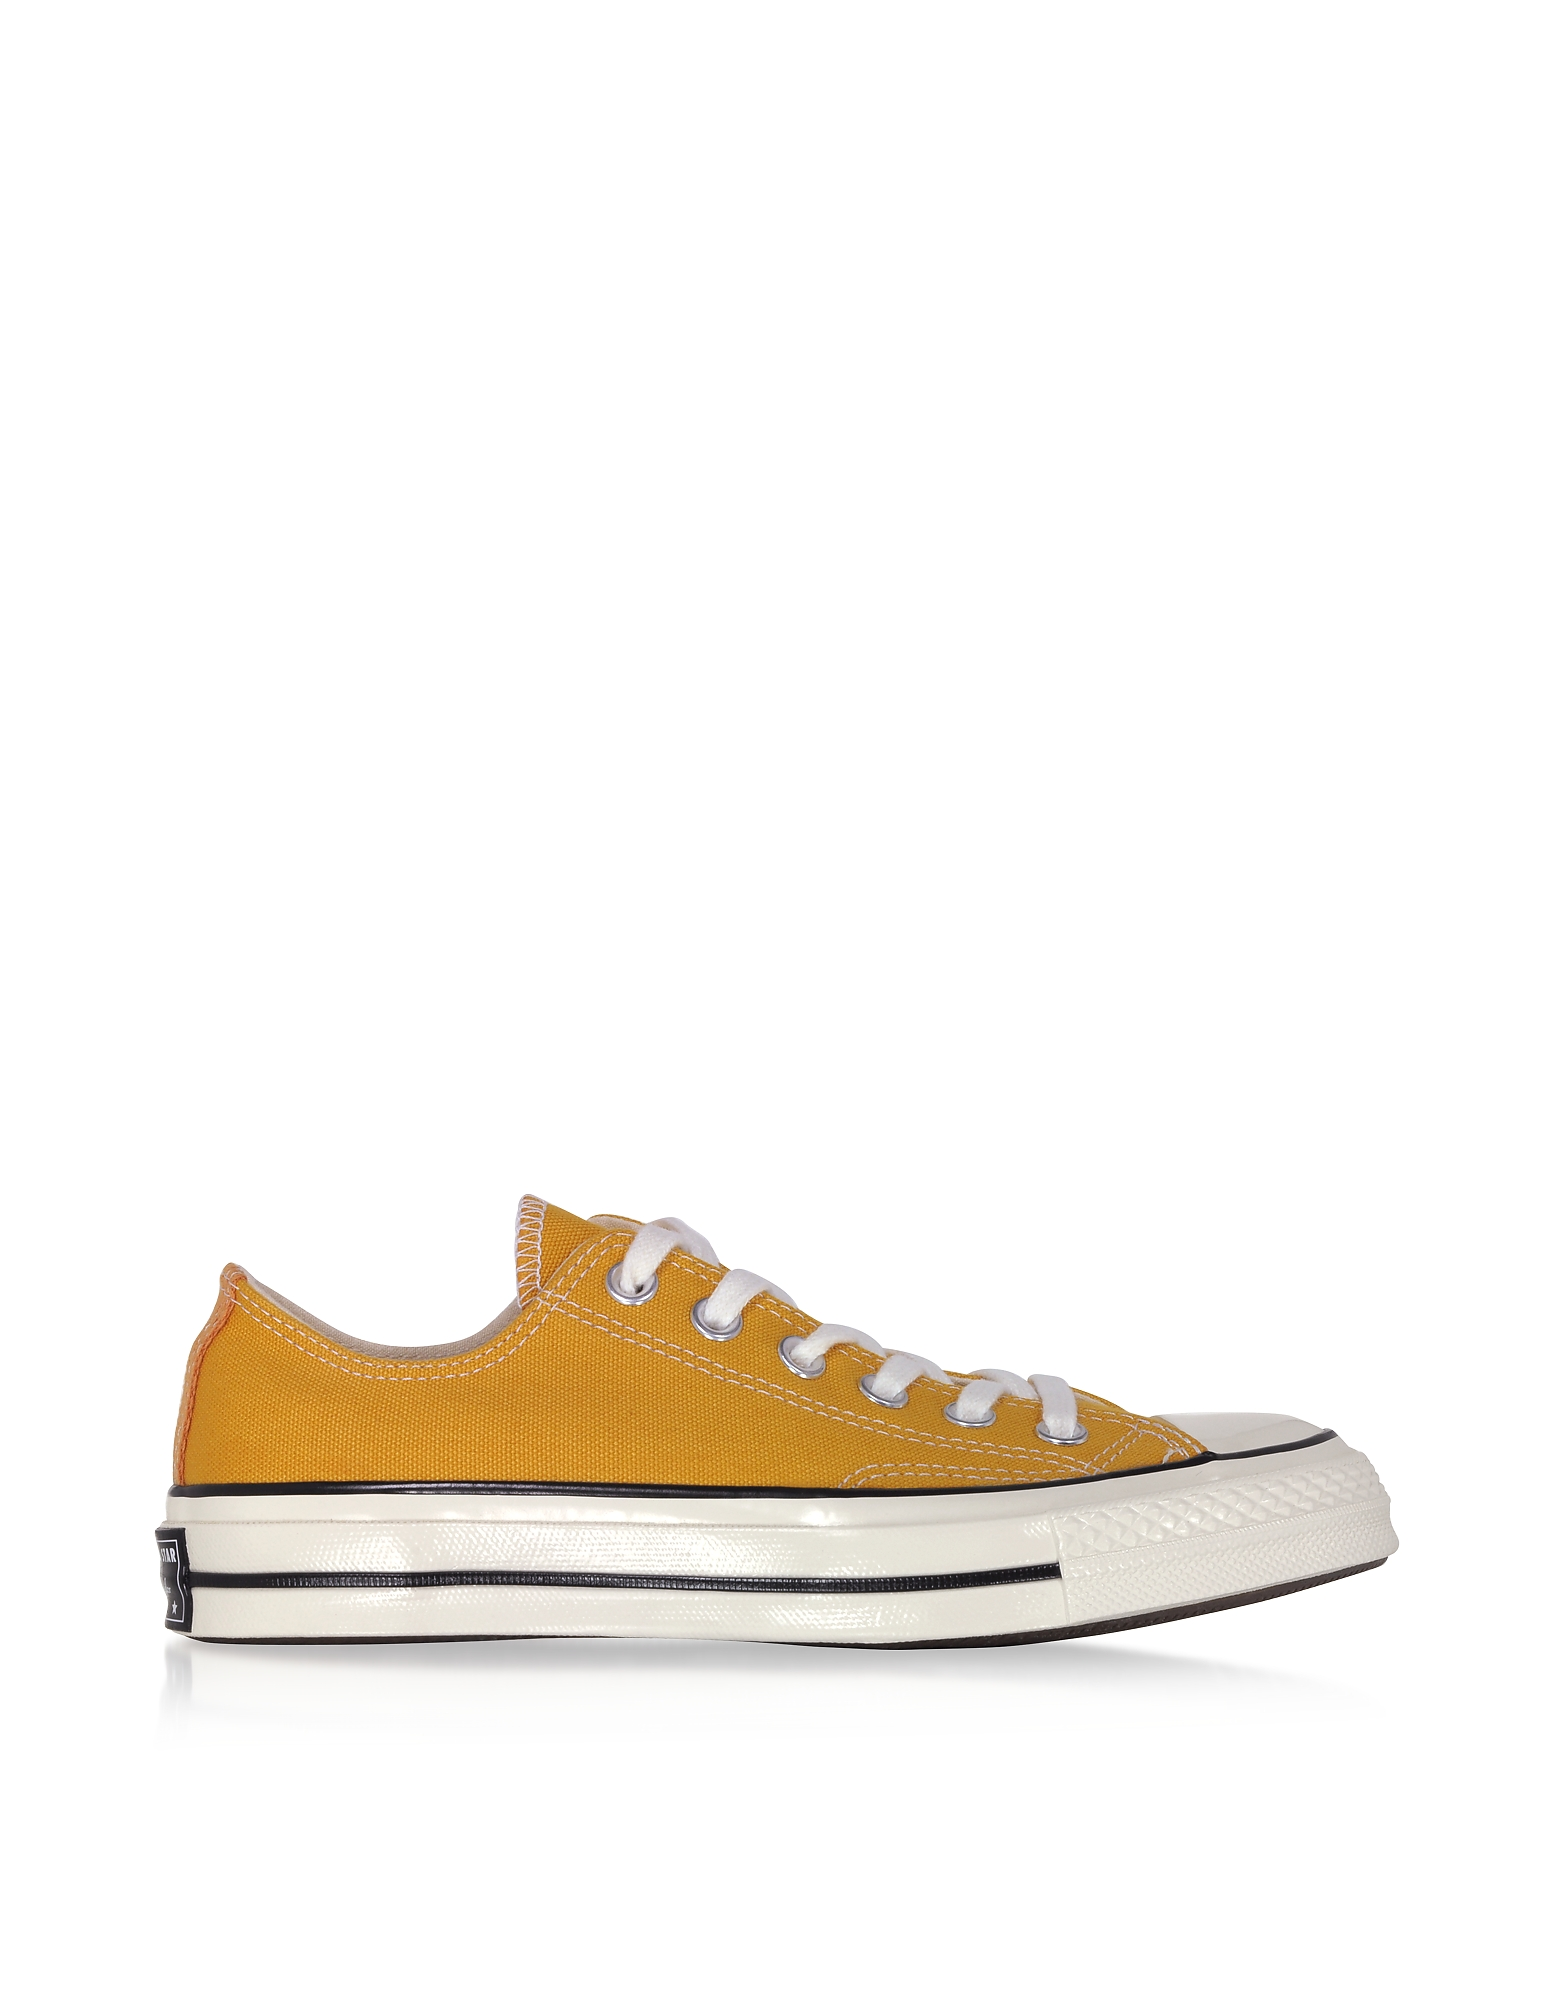 Converse Limited Edition Designer Shoes, Sunflower Chuck 70 w/ Vintage Canvas Low Top